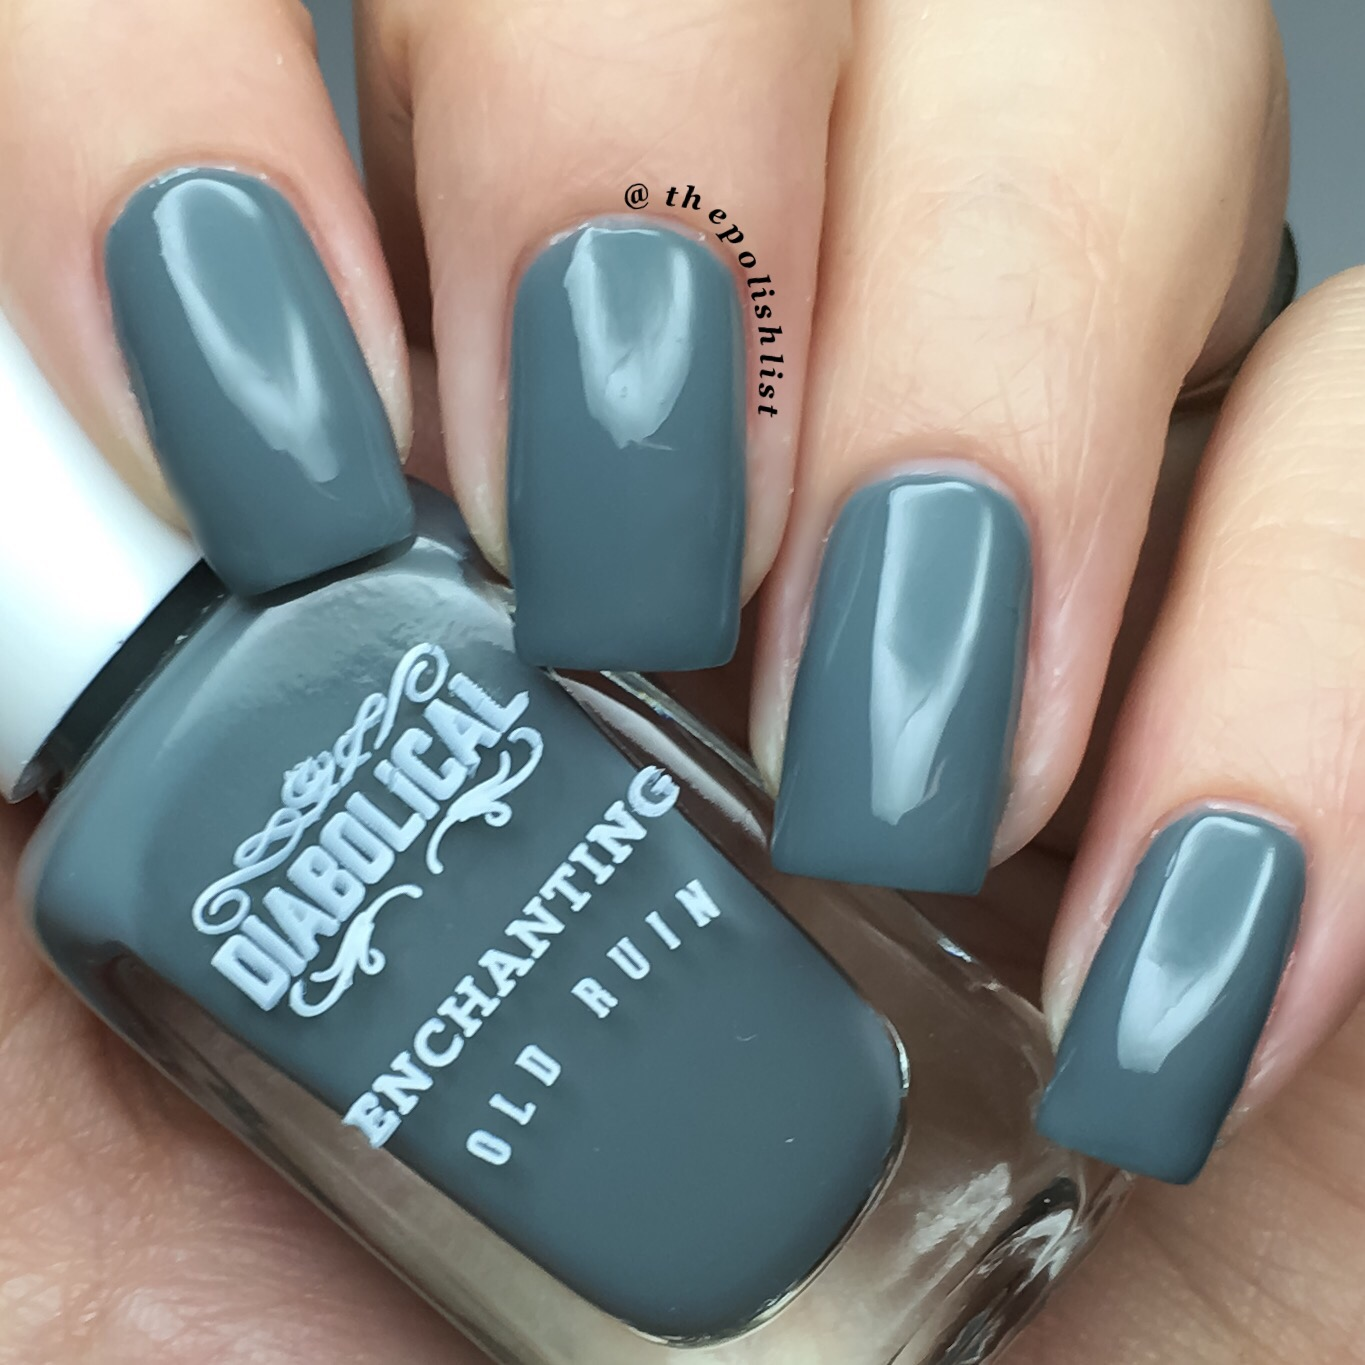 I Used The Purple And Grey From The Set, As Well As Some Of My Own To  Create This Simple Nail Art Look Inspired By Some Of The More Iconic  Elements Of